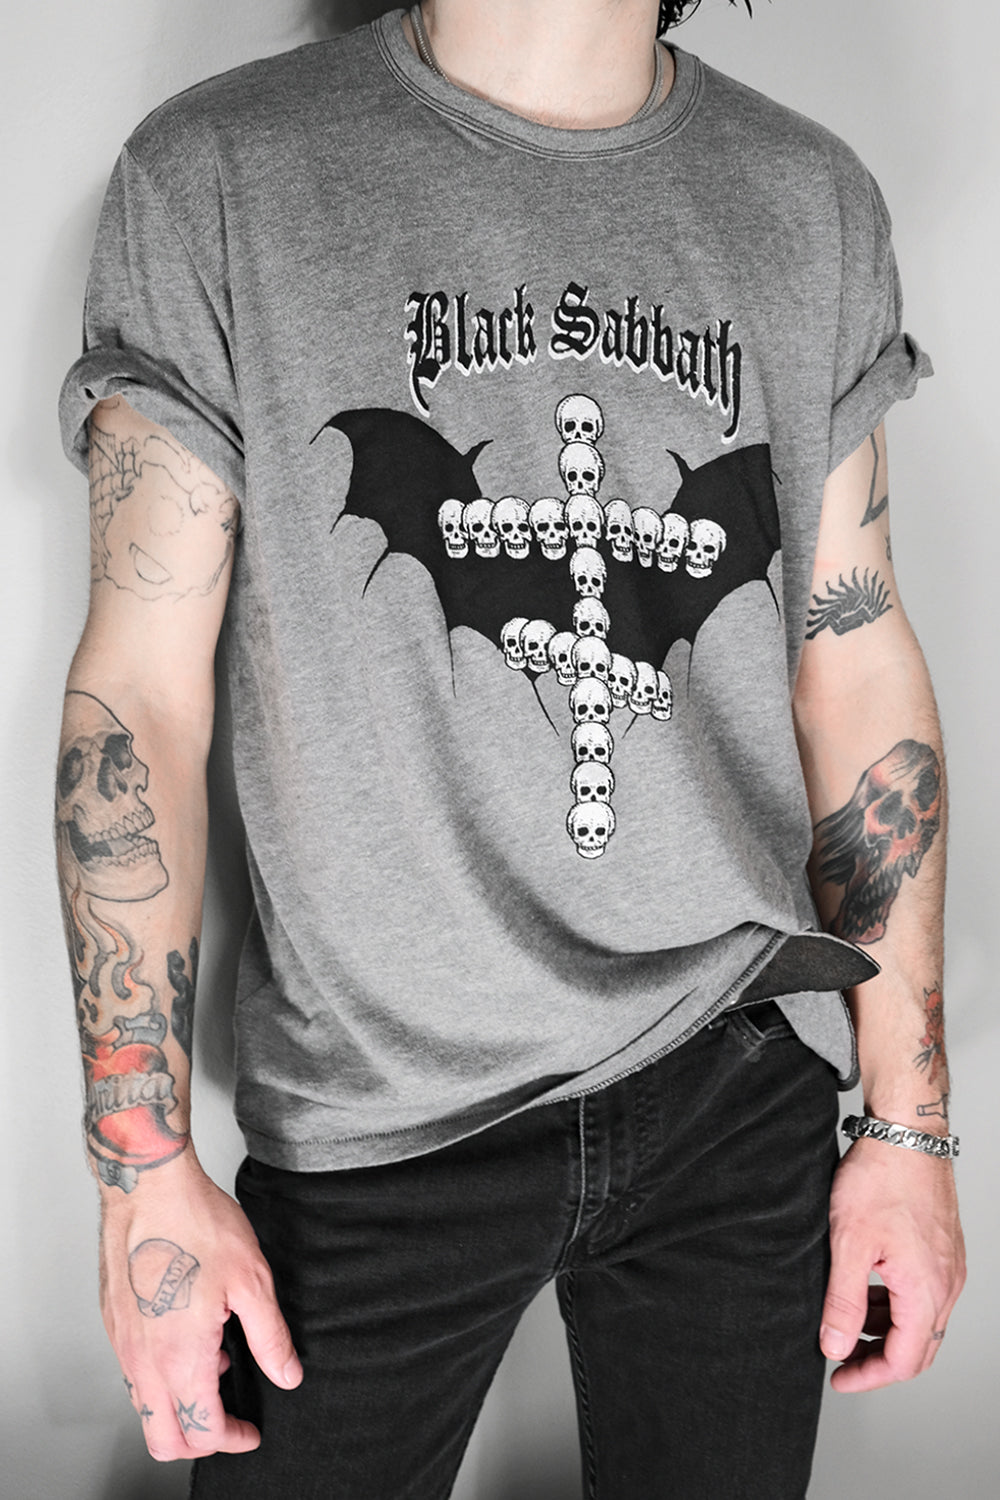 Black Sabbath Grey/Black Unisex 50/50 Tee by Gimme Danger | In Stock